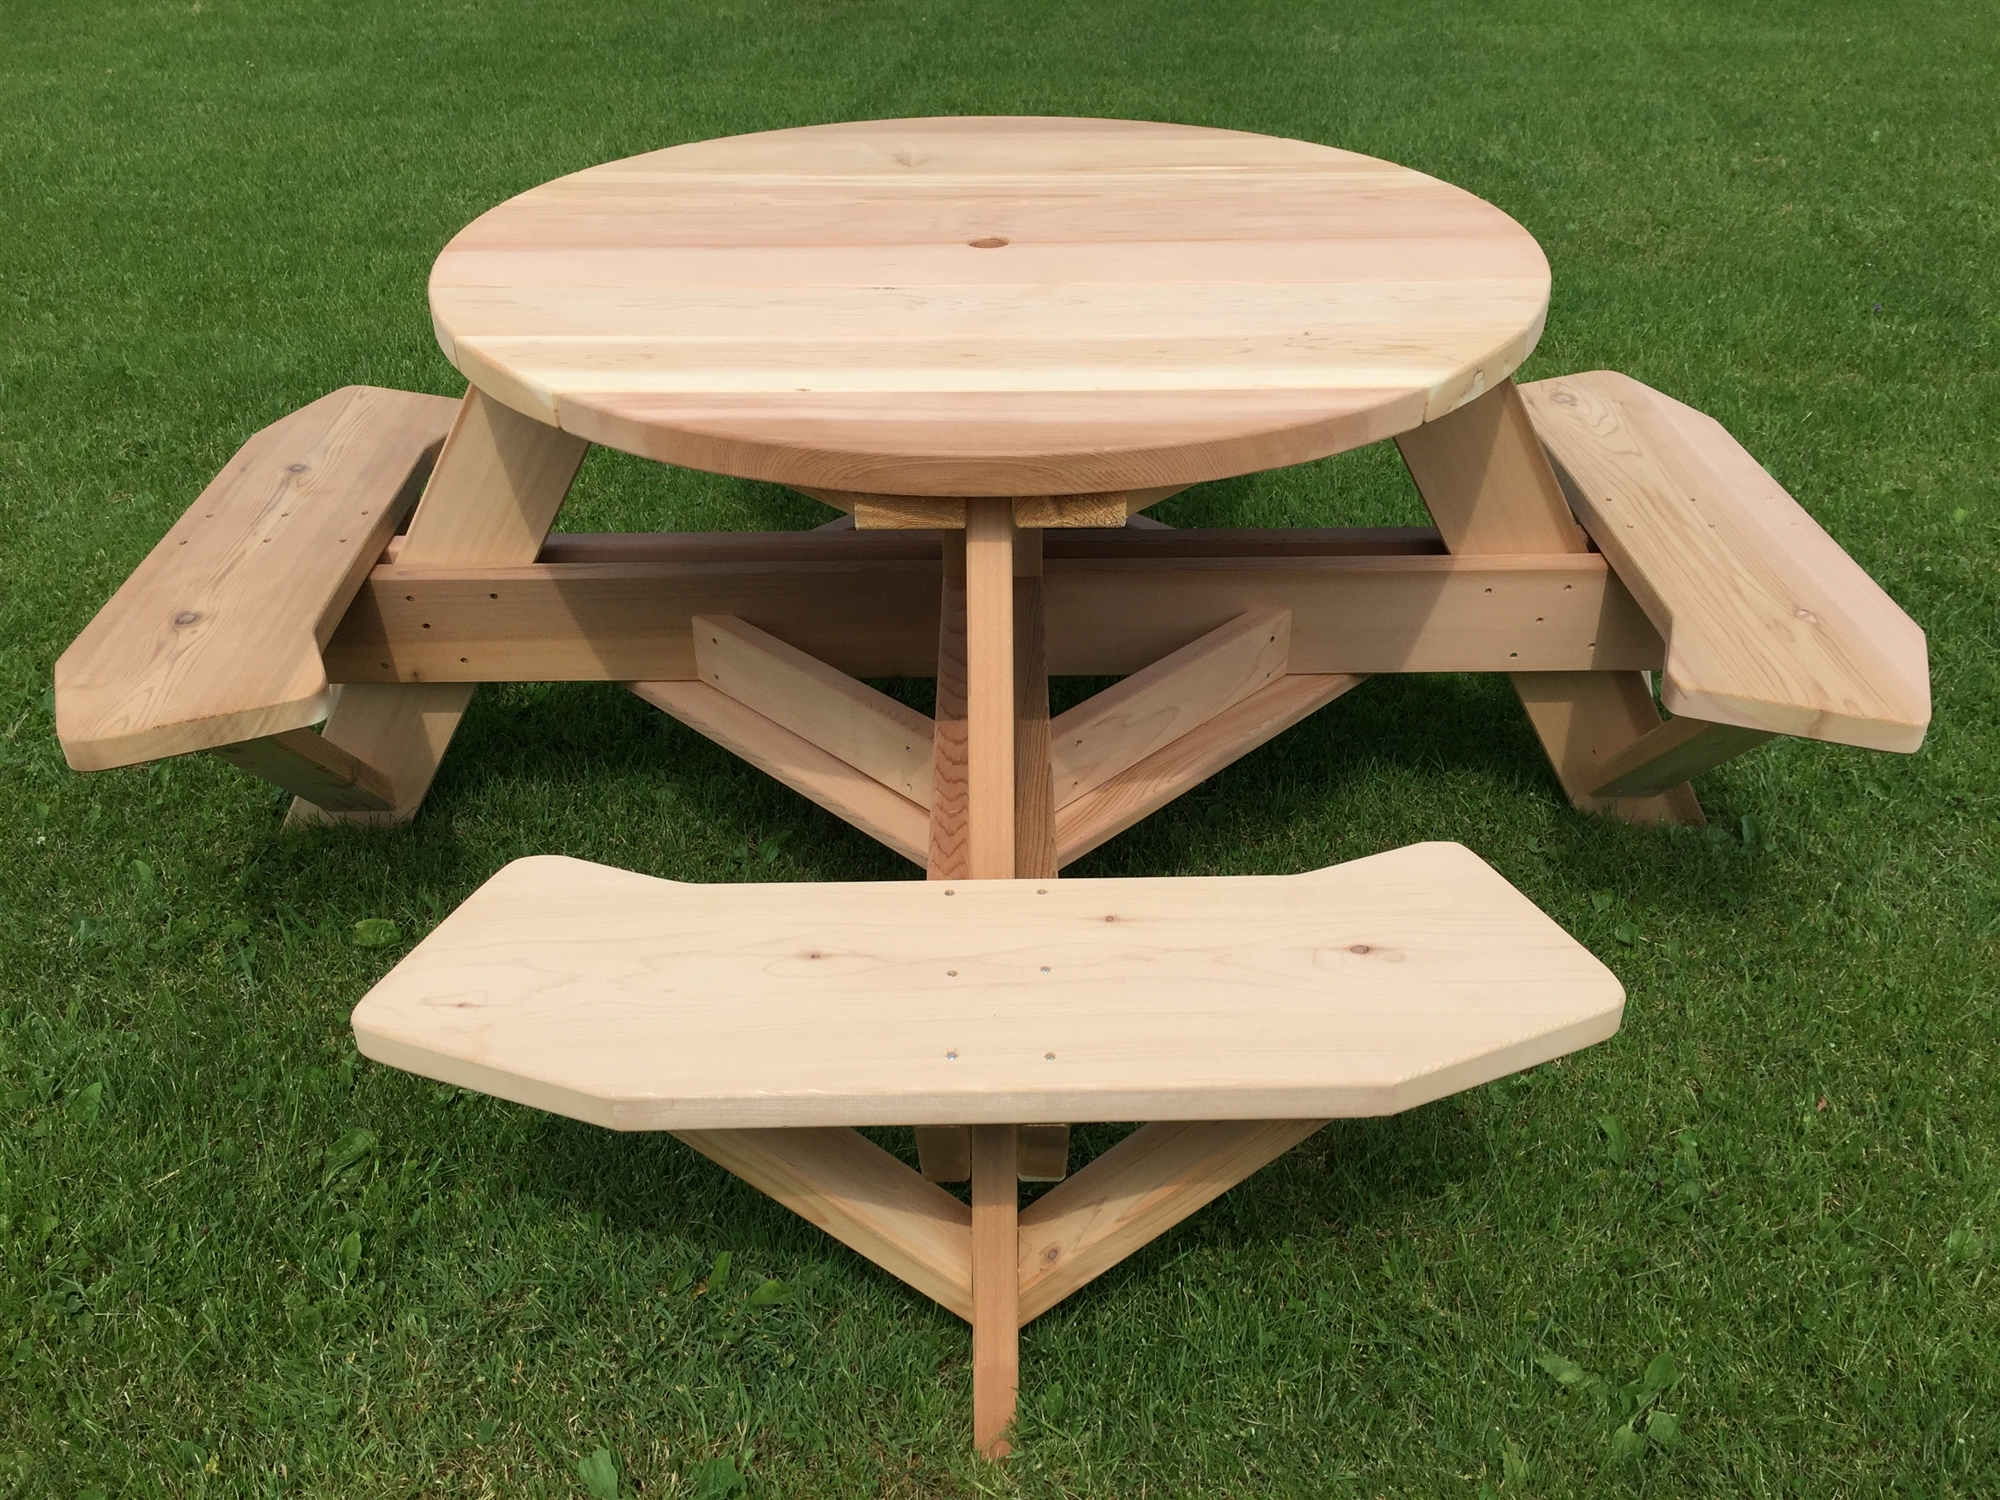 Pleasing 45 Round Picnic Table With Easy Seating Gmtry Best Dining Table And Chair Ideas Images Gmtryco